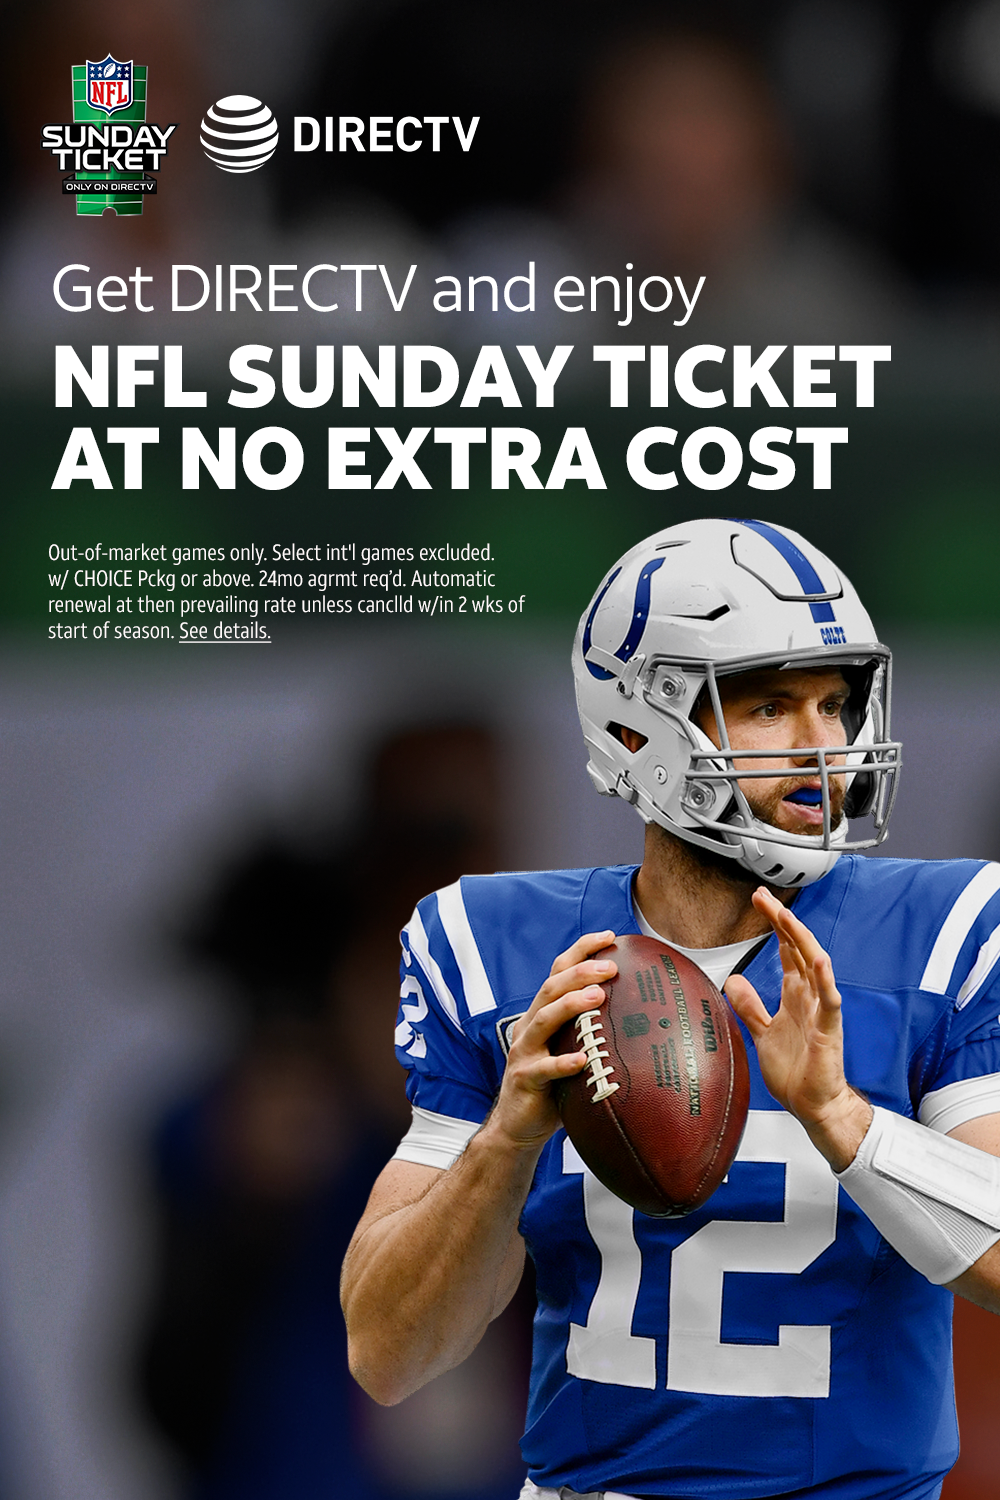 Get DIRECTV and get NFL SUNDAY TICKET at no extra cost